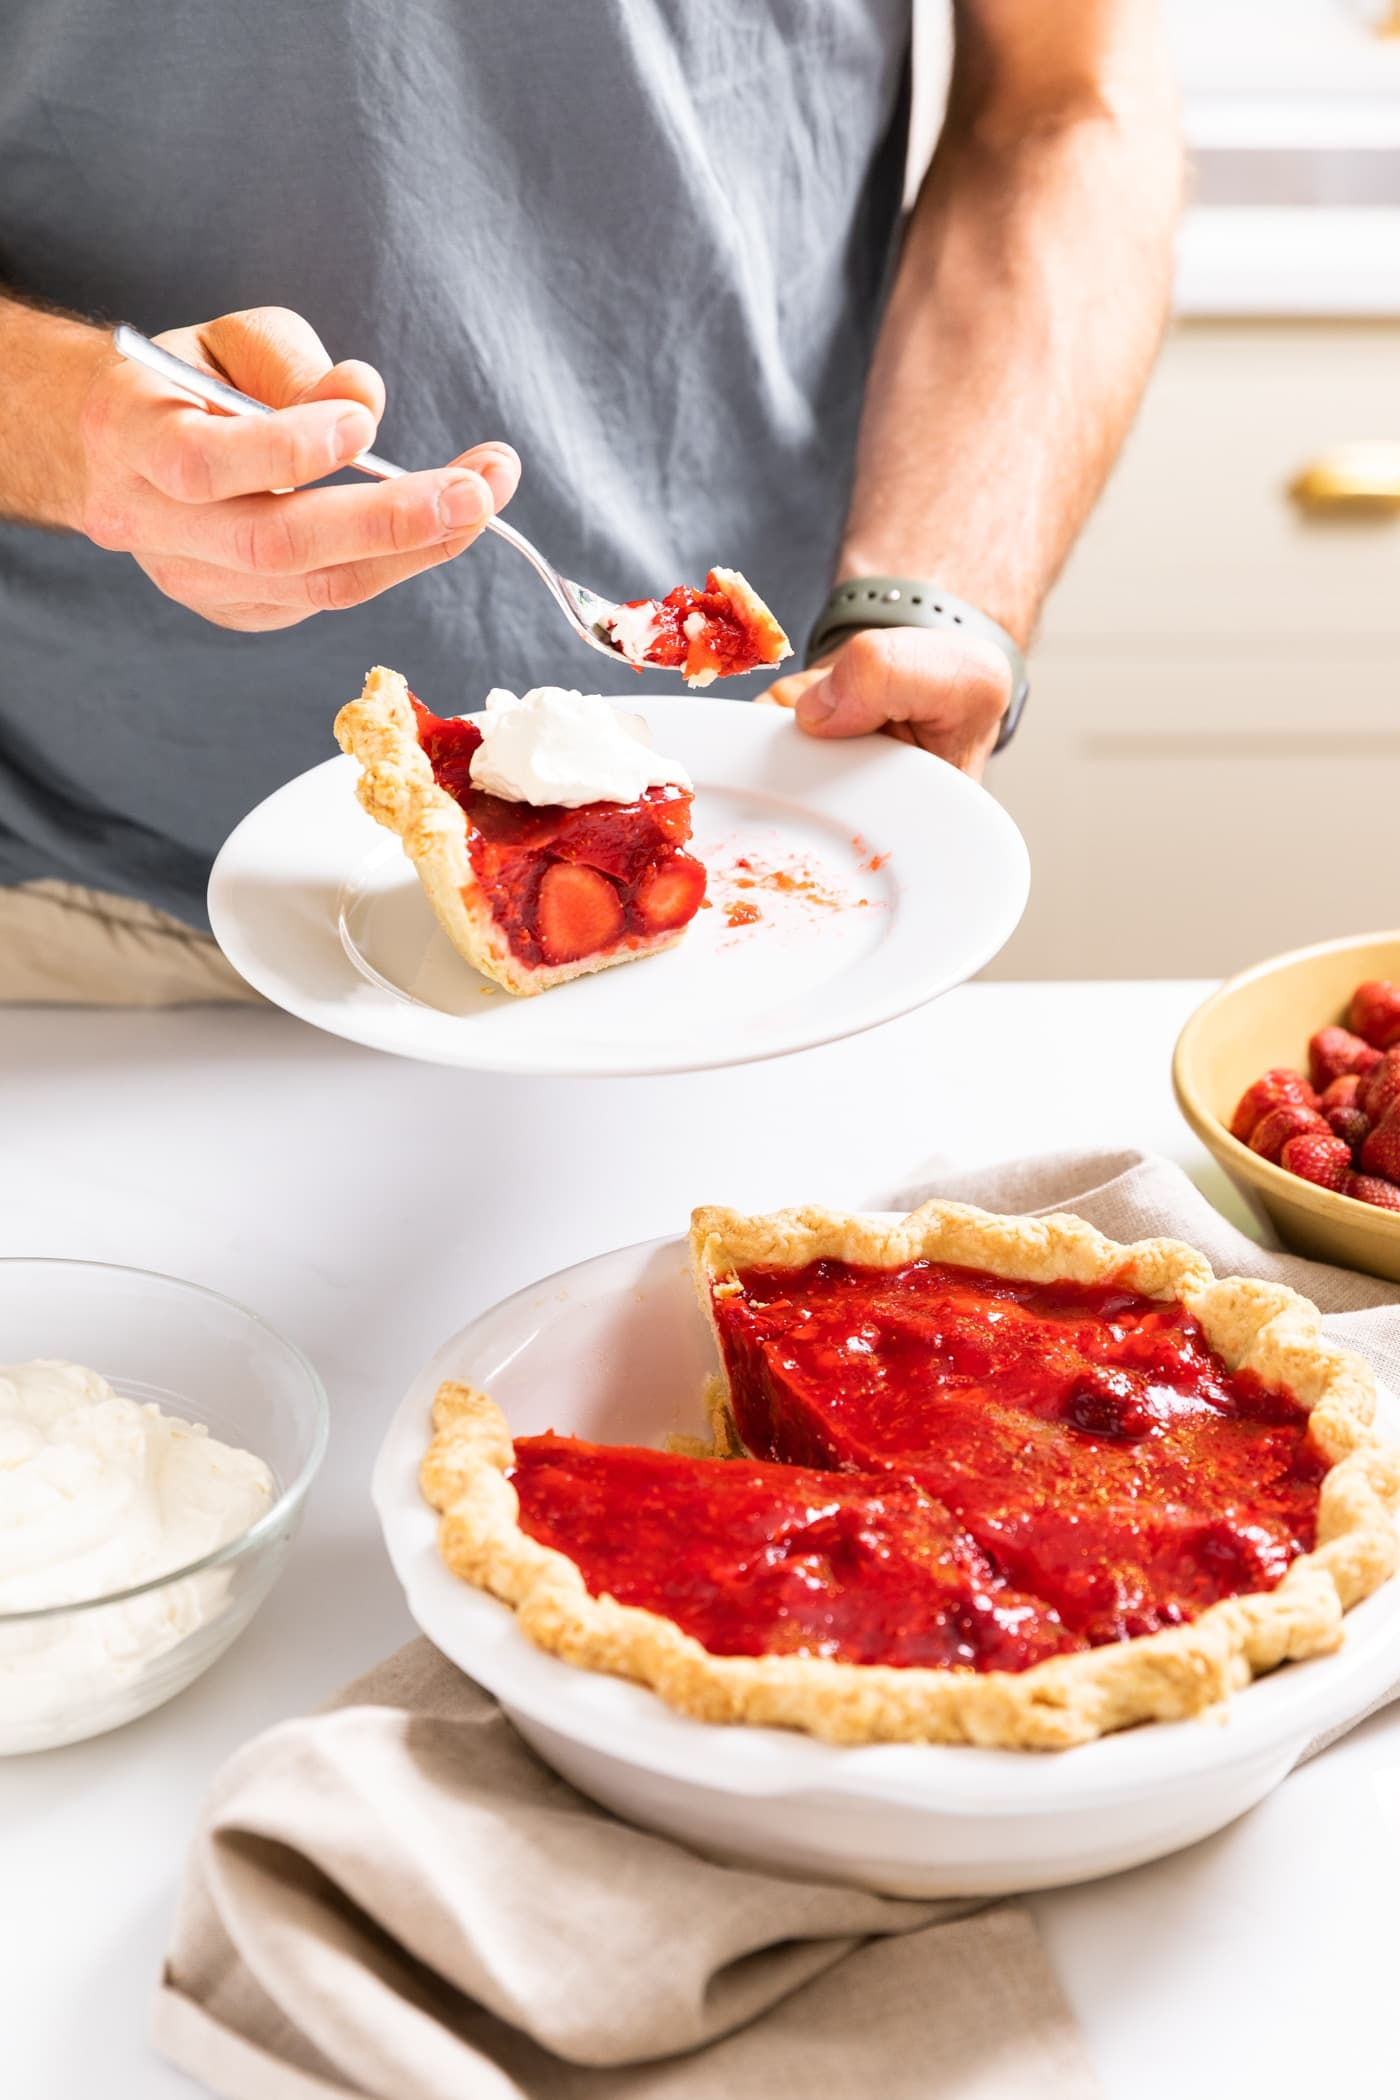 Two hands holding white plate with slice of strawberry pie sitting on it topped with whipped cream with rest of pie sitting below on white countertop